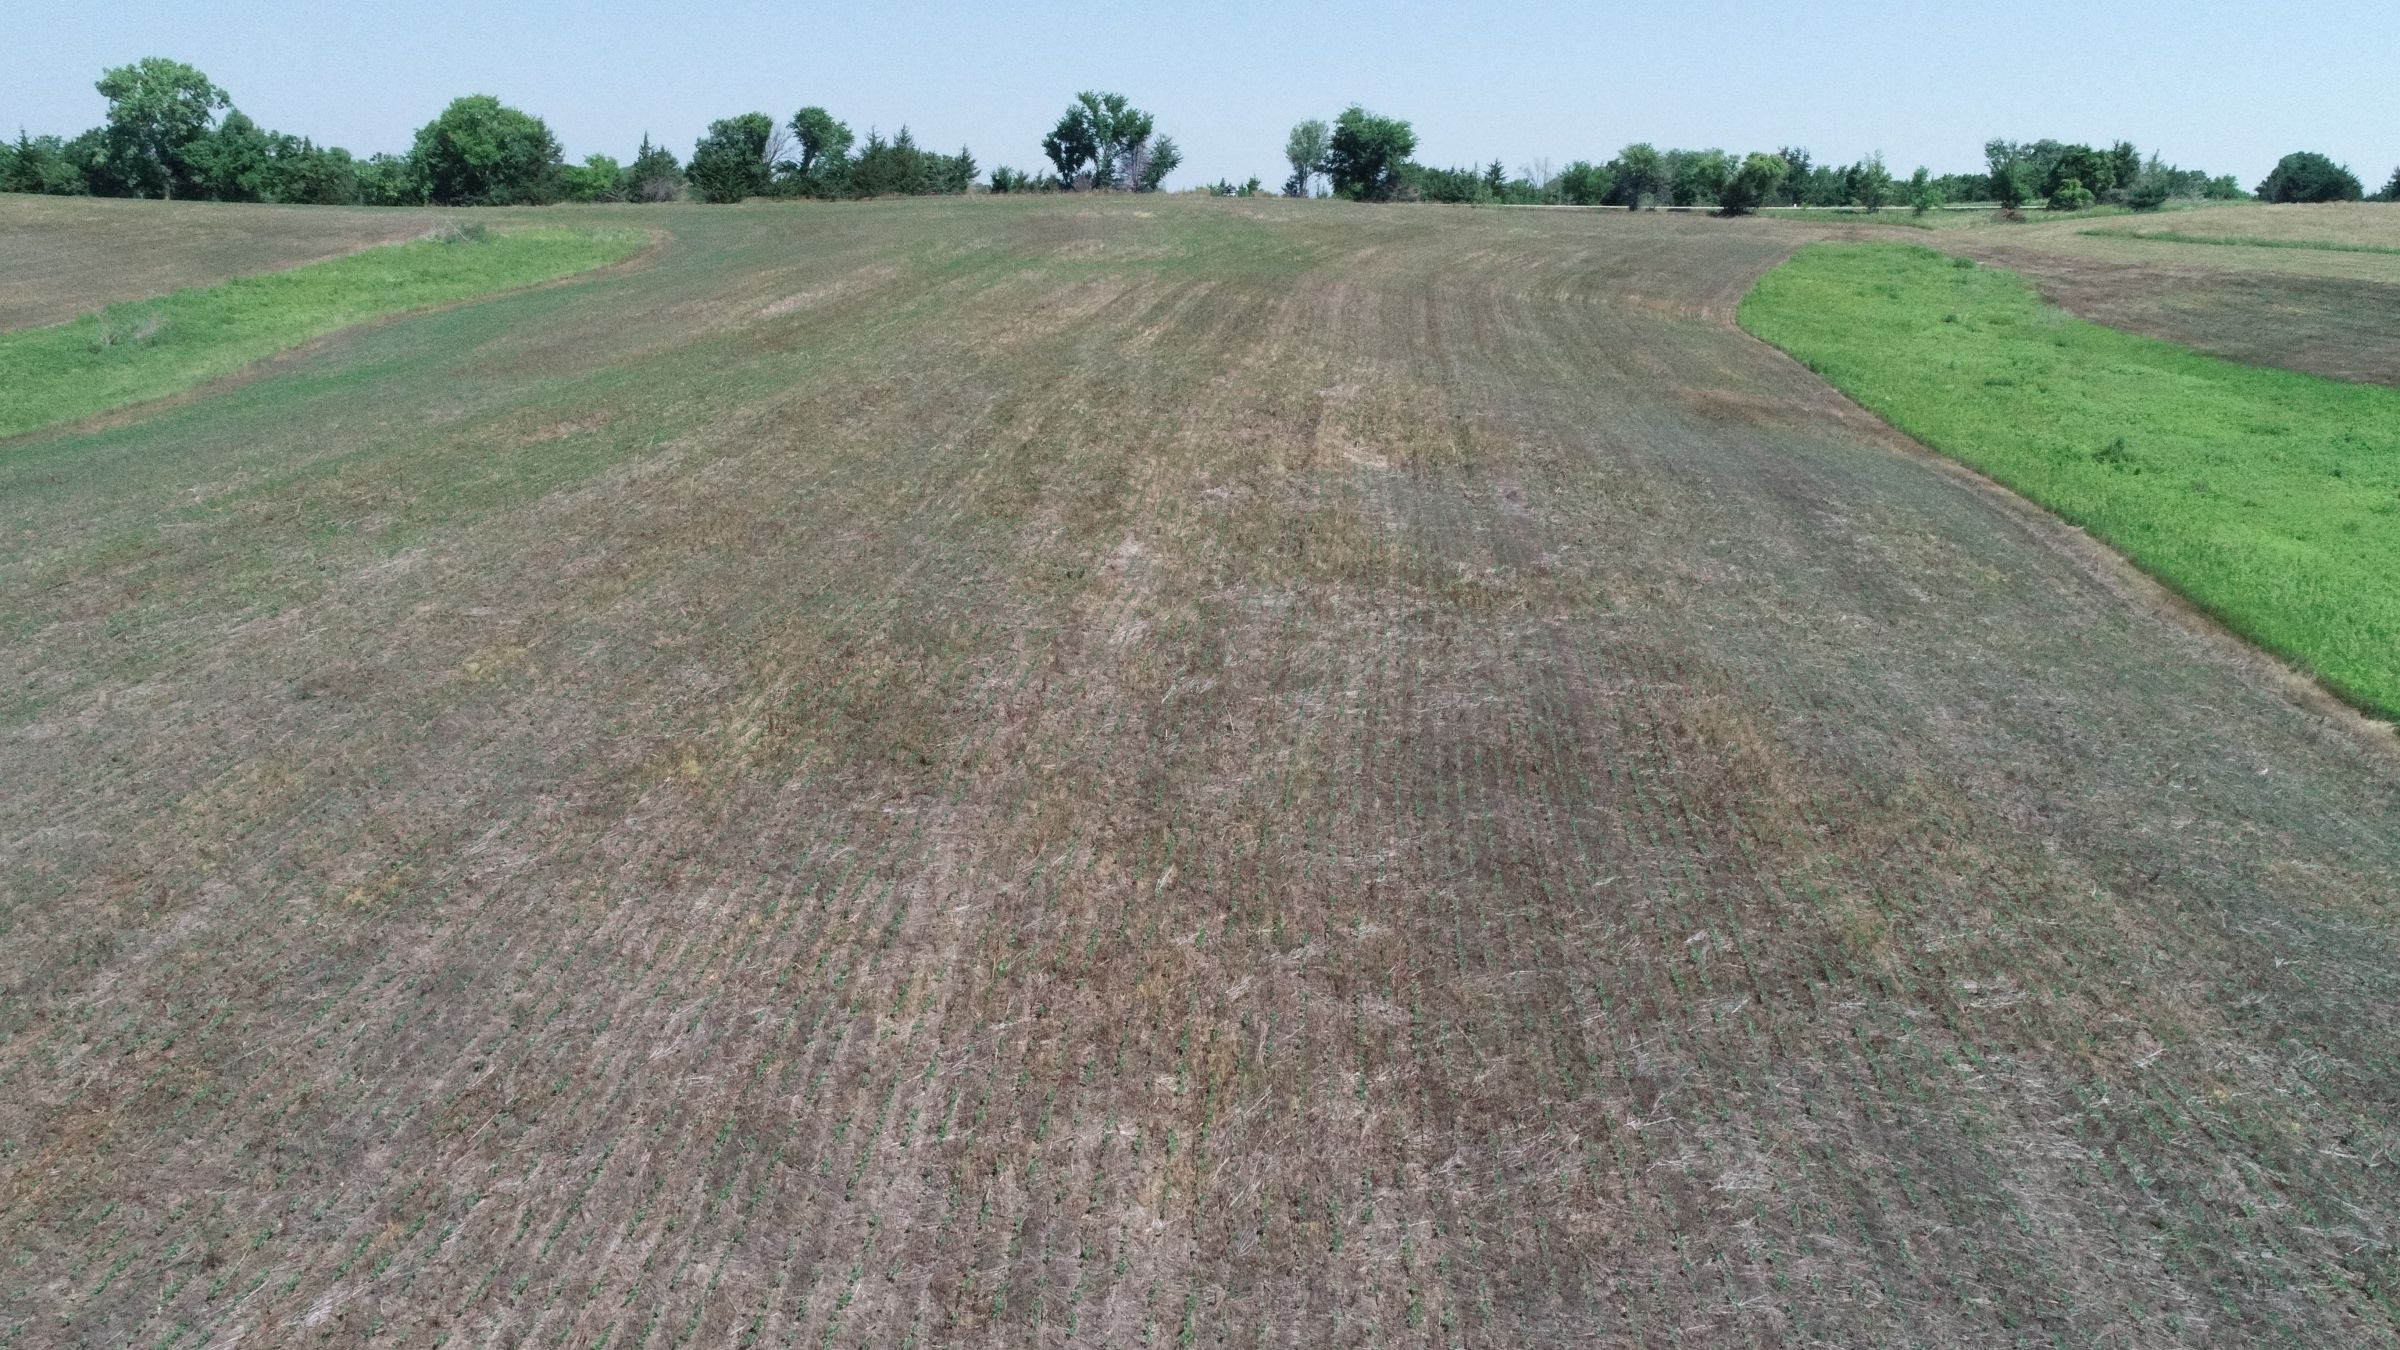 land-decatur-county-iowa-40-acres-listing-number-15069-7-2020-07-13-190434.JPG